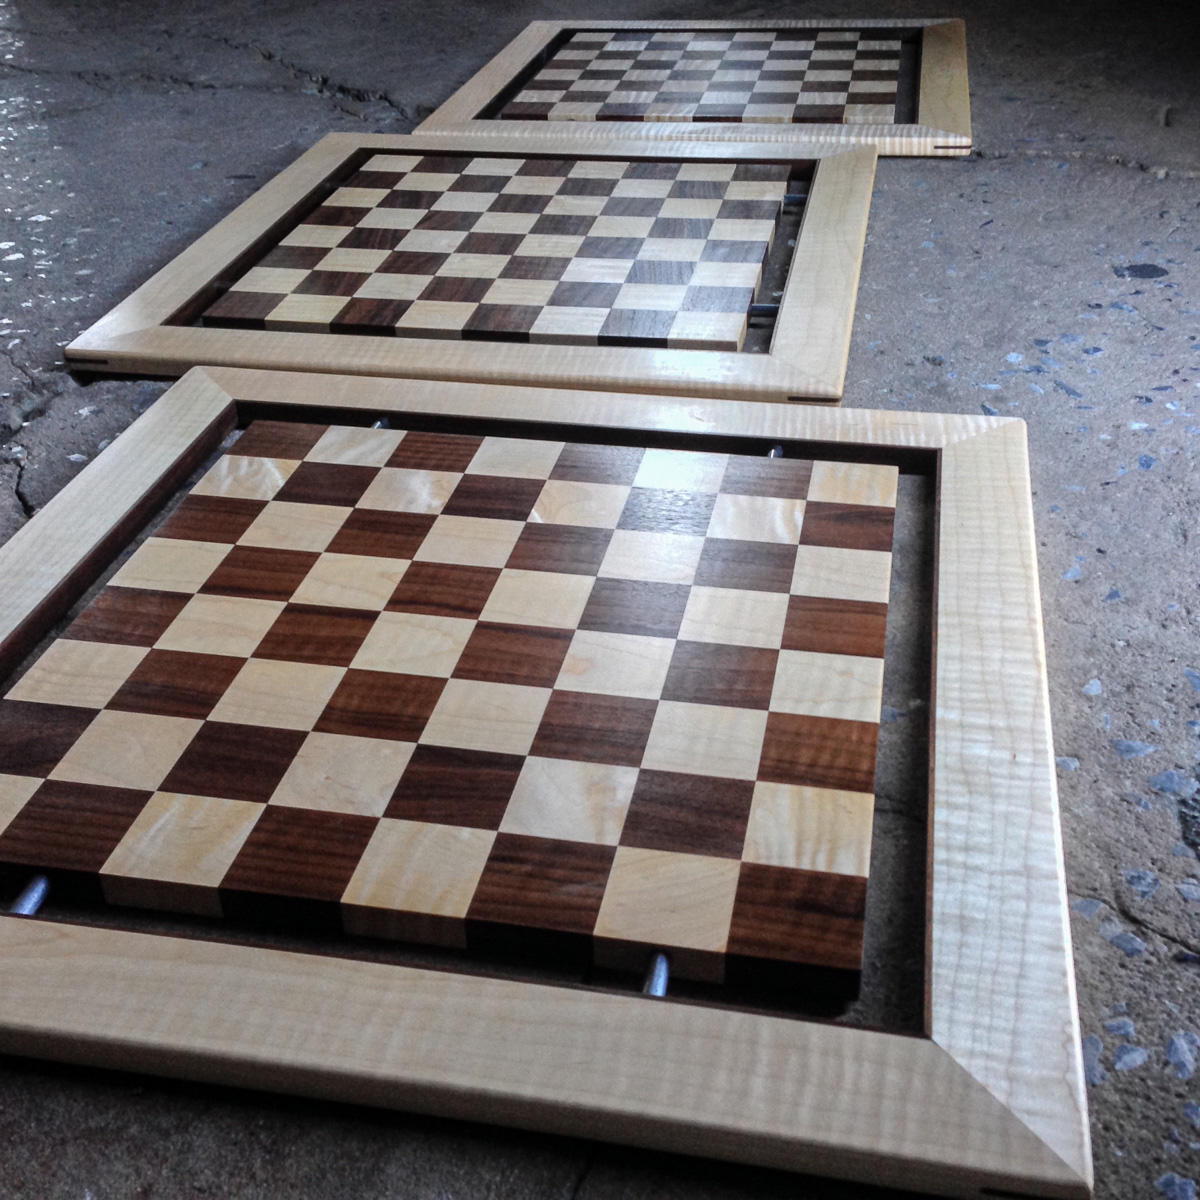 Curly maple and walnut floating chess boards. The boards are retained into a mitered and splined frame by four steel rods.